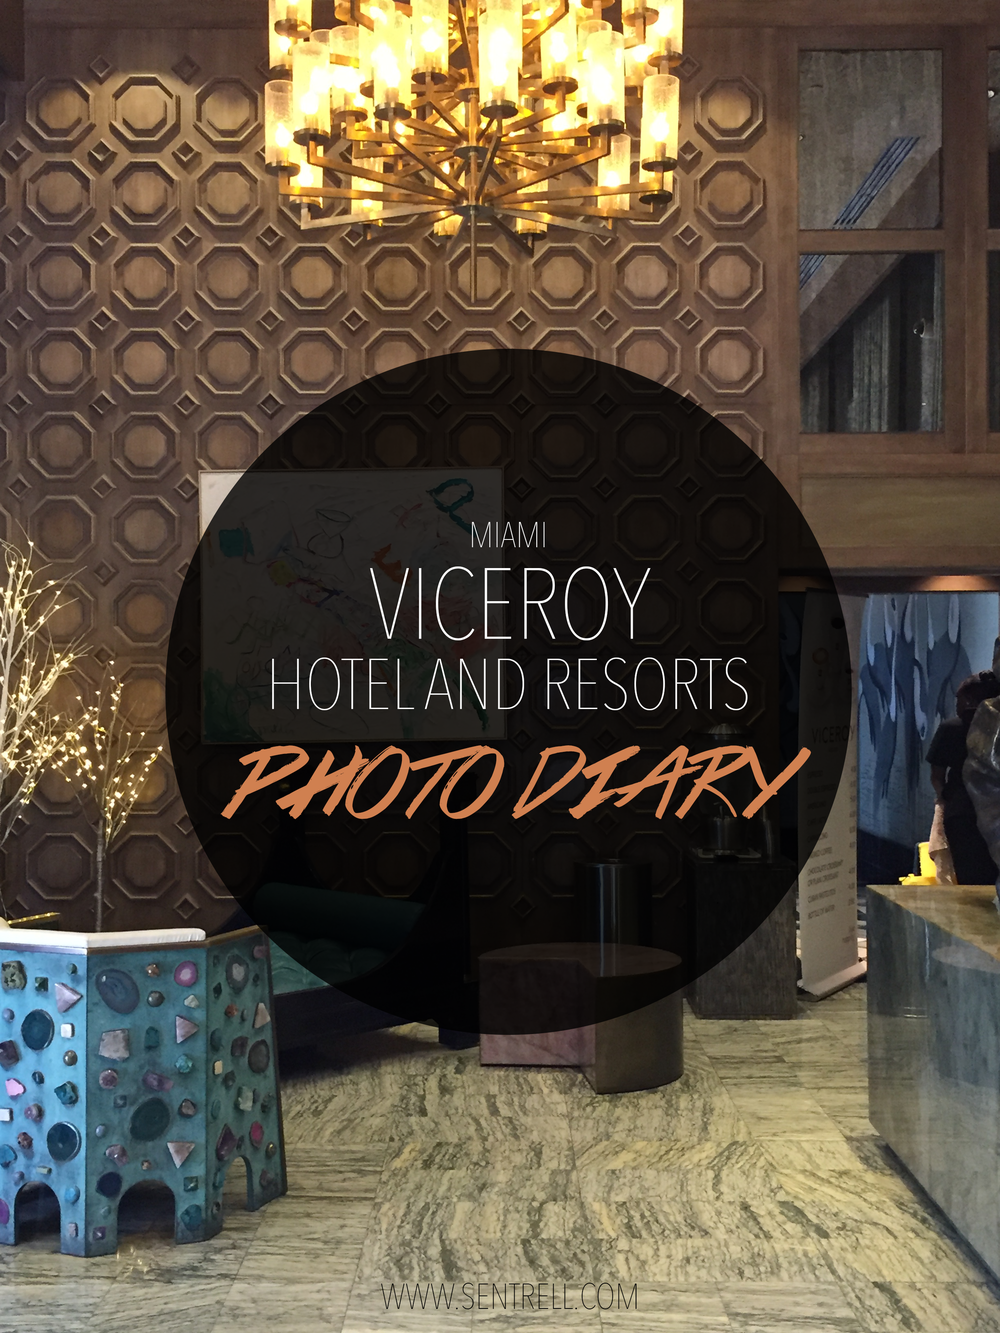 viceroy Miami photo diary